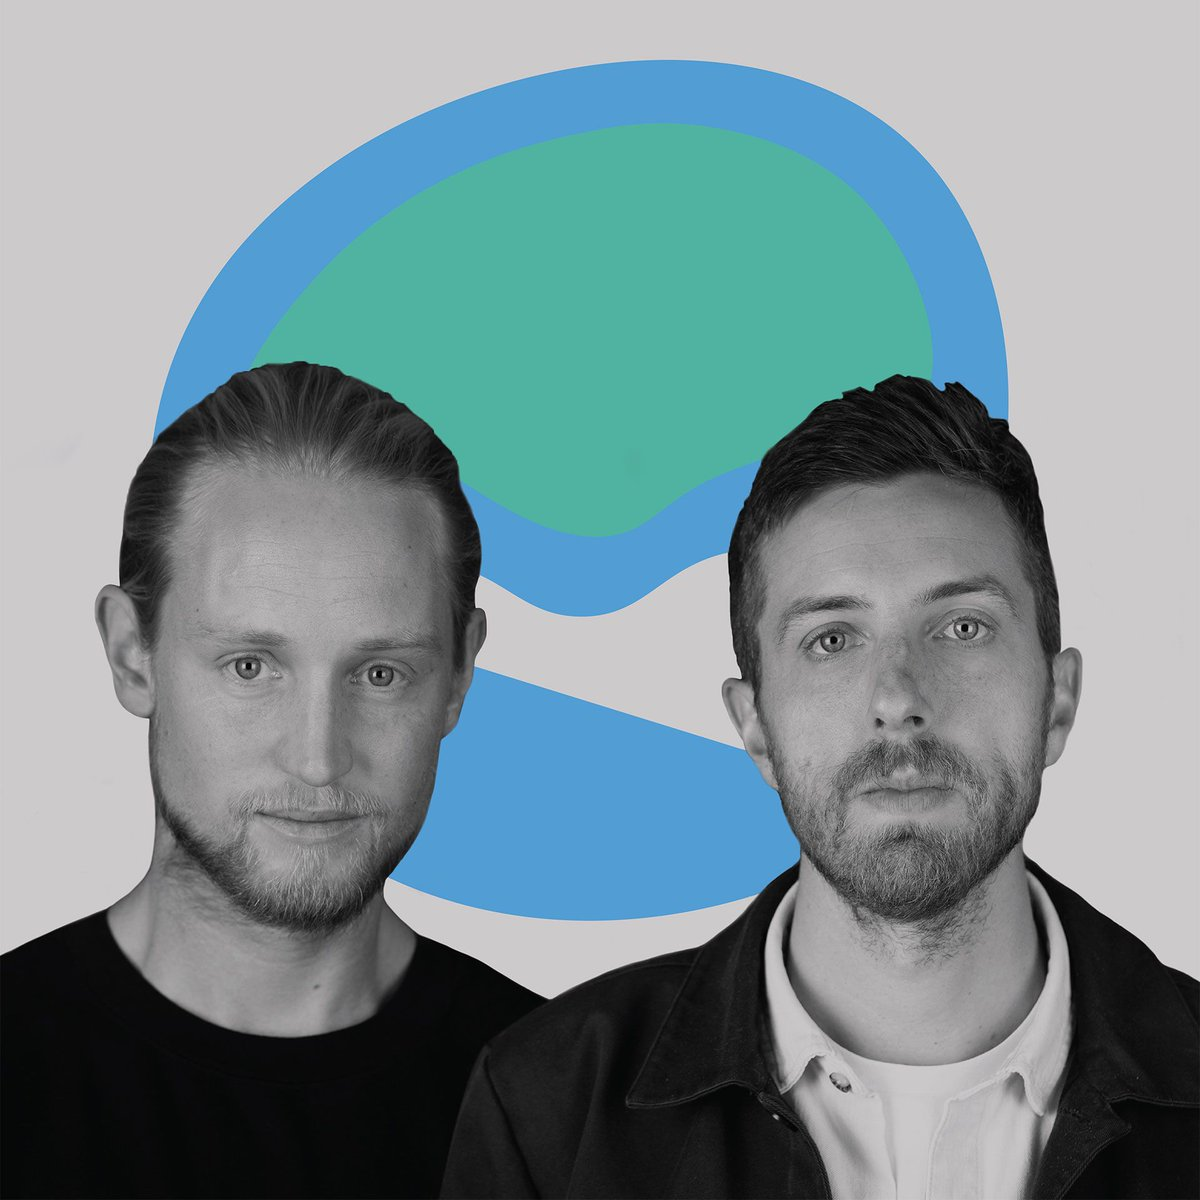 To kick off the new year, @MuseByClio spent #2MinutesWith Droga5 NY Co-CCOs Felix Richter and Tim Gordon. Click the link to learn more about our favorite German+Canadian duo! Special thank you to @nudd for making it happen.